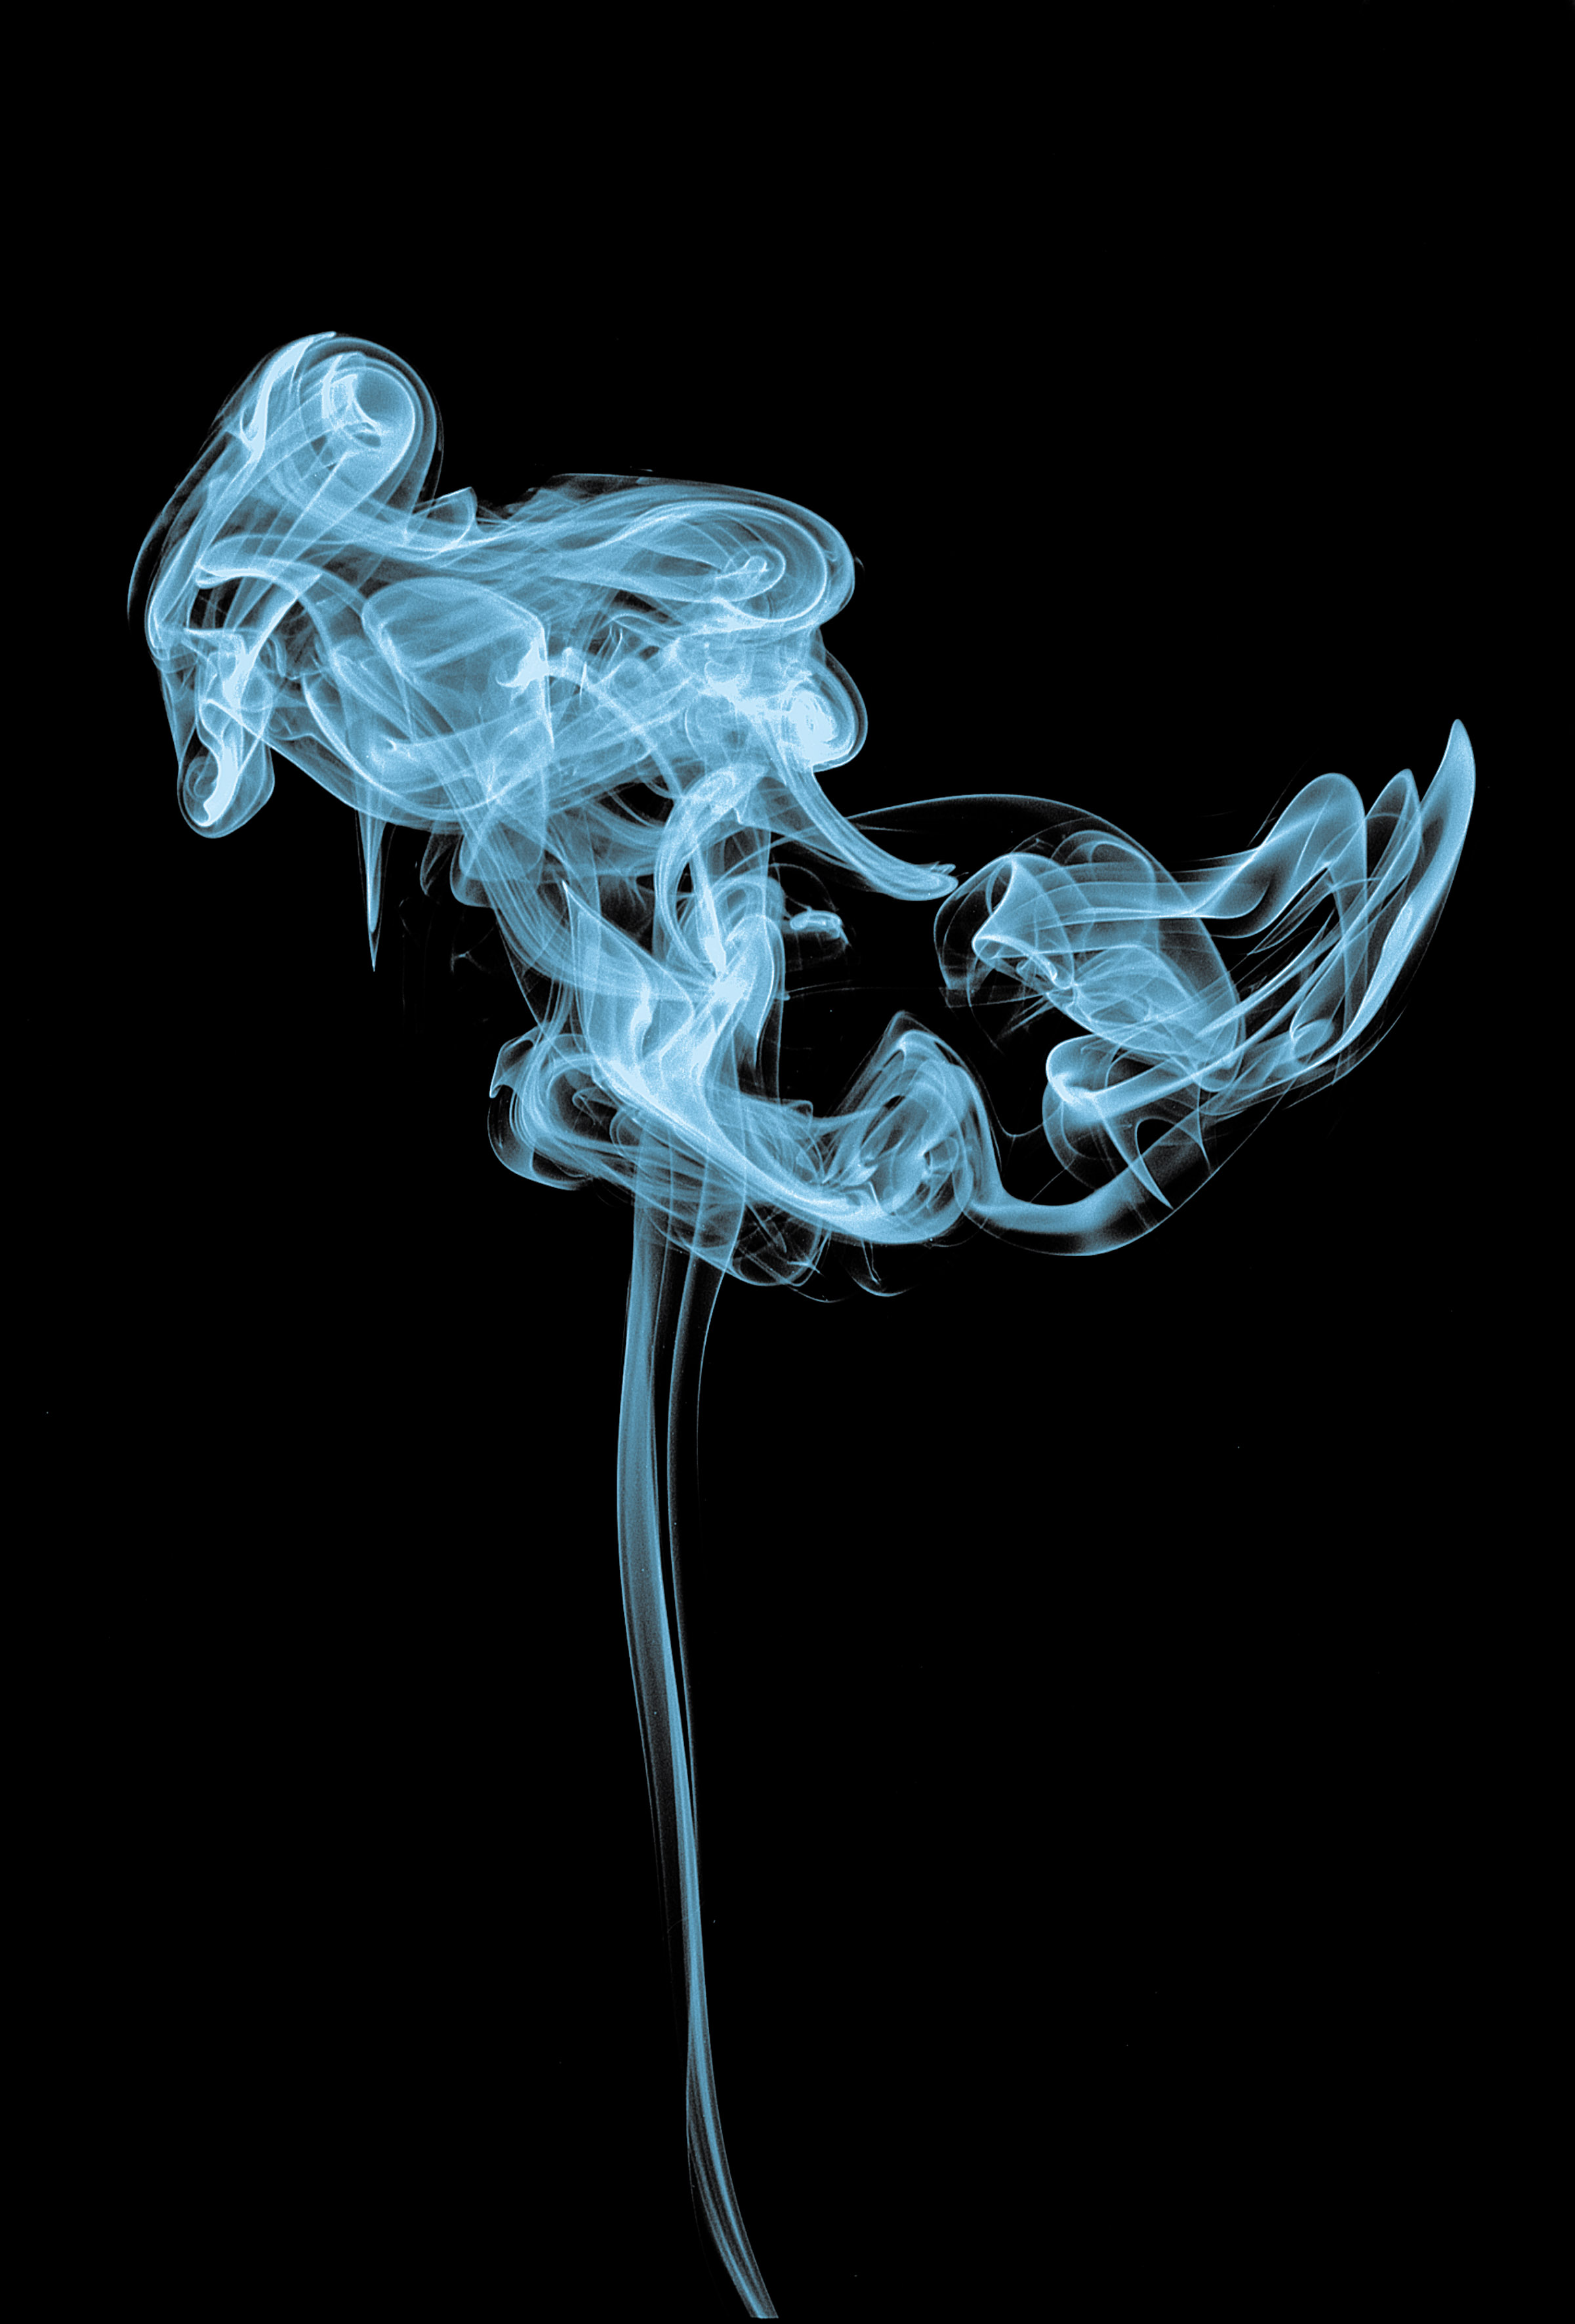 Colorful Skull Iphone Wallpaper 20 Smoke Images Hd Download Free Pictures On Unsplash